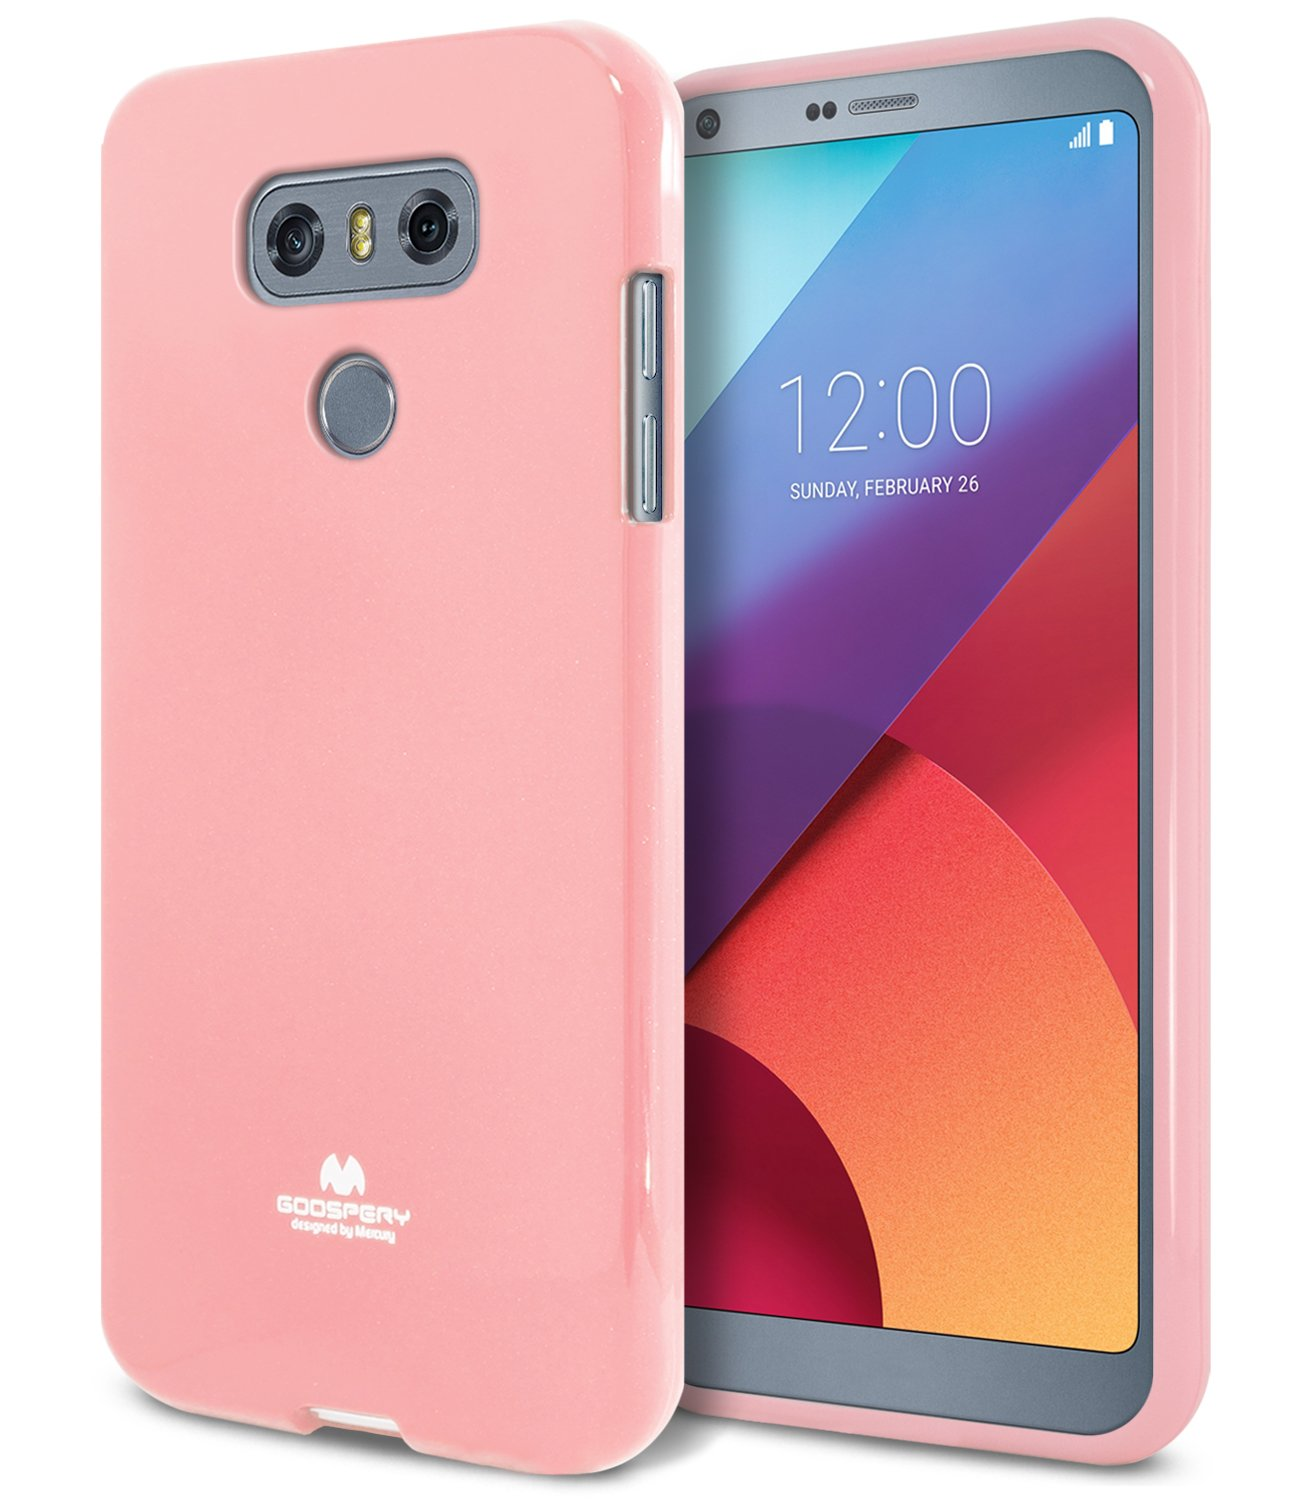 Lg G6 Case Thin Slim Goospery Flexible Color Pearl Iphone 7 Soft Feeling Jelly With Hole Black Rubber Tpu Lightweight Bumper Cover Impact Resistant For Pink